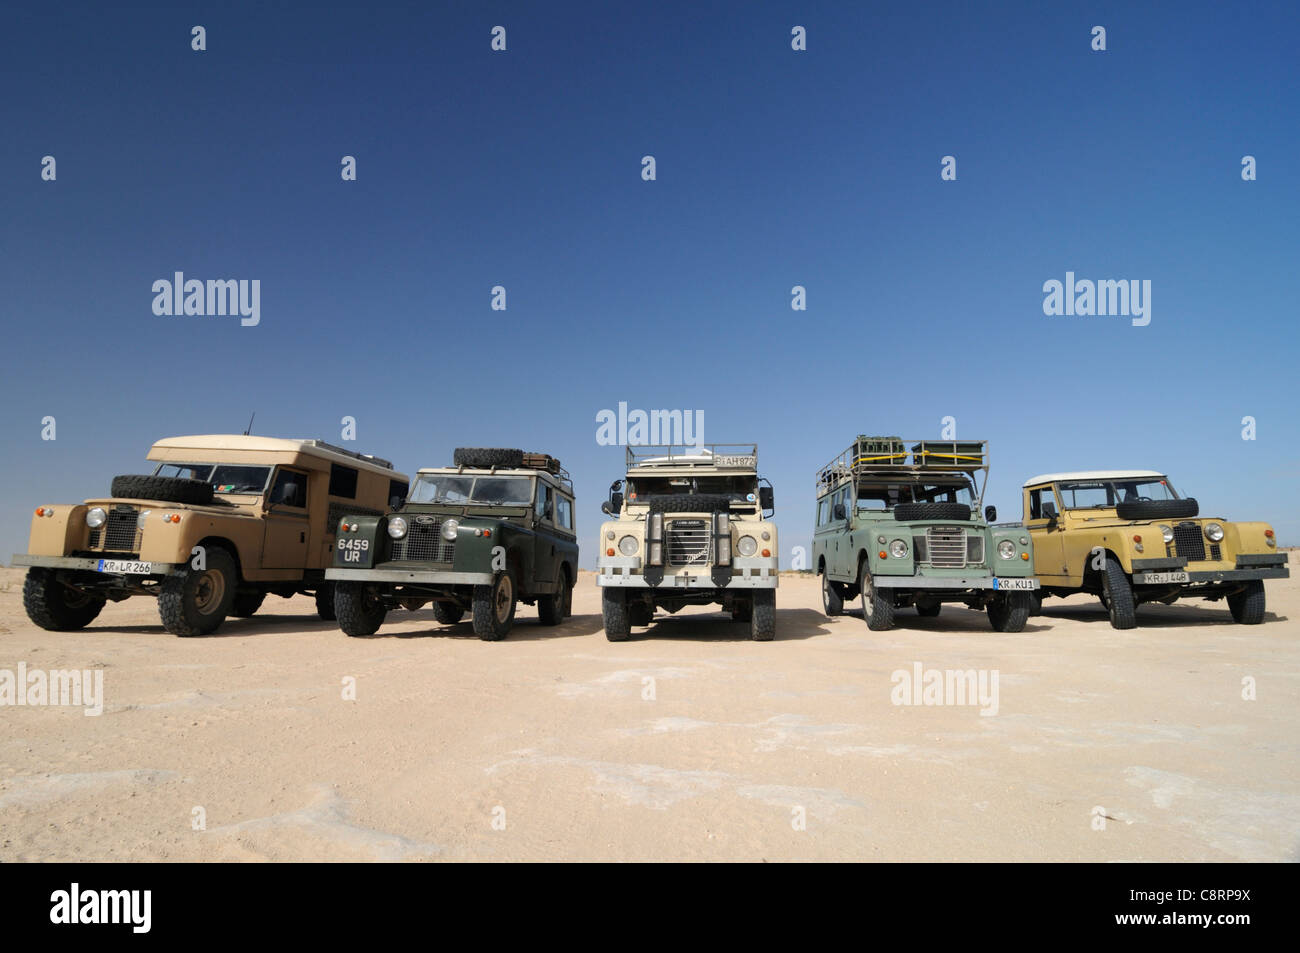 Africa, Tunisia, south of Douz. A group of five historic Series Land Rovers lined up for a journey through the desert - Stock Image